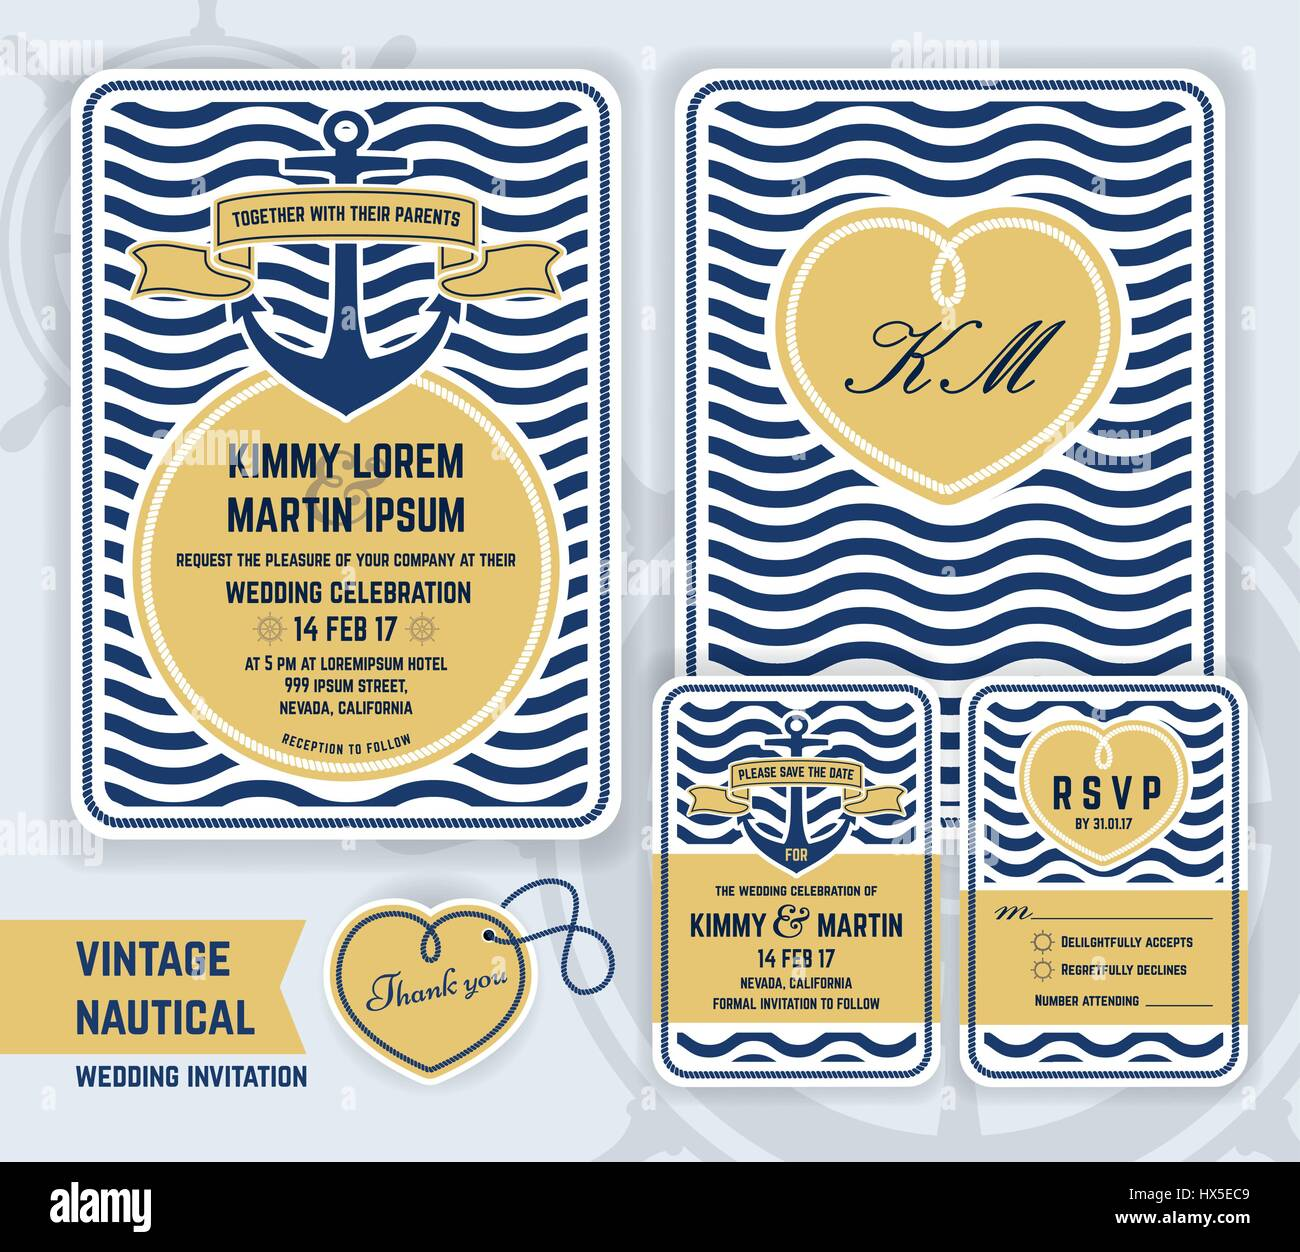 Vintage nautical anchor wedding invitation template design include vintage nautical anchor wedding invitation template design include invitation respond cards save the date thank you tags gift tags vector illust stopboris Gallery